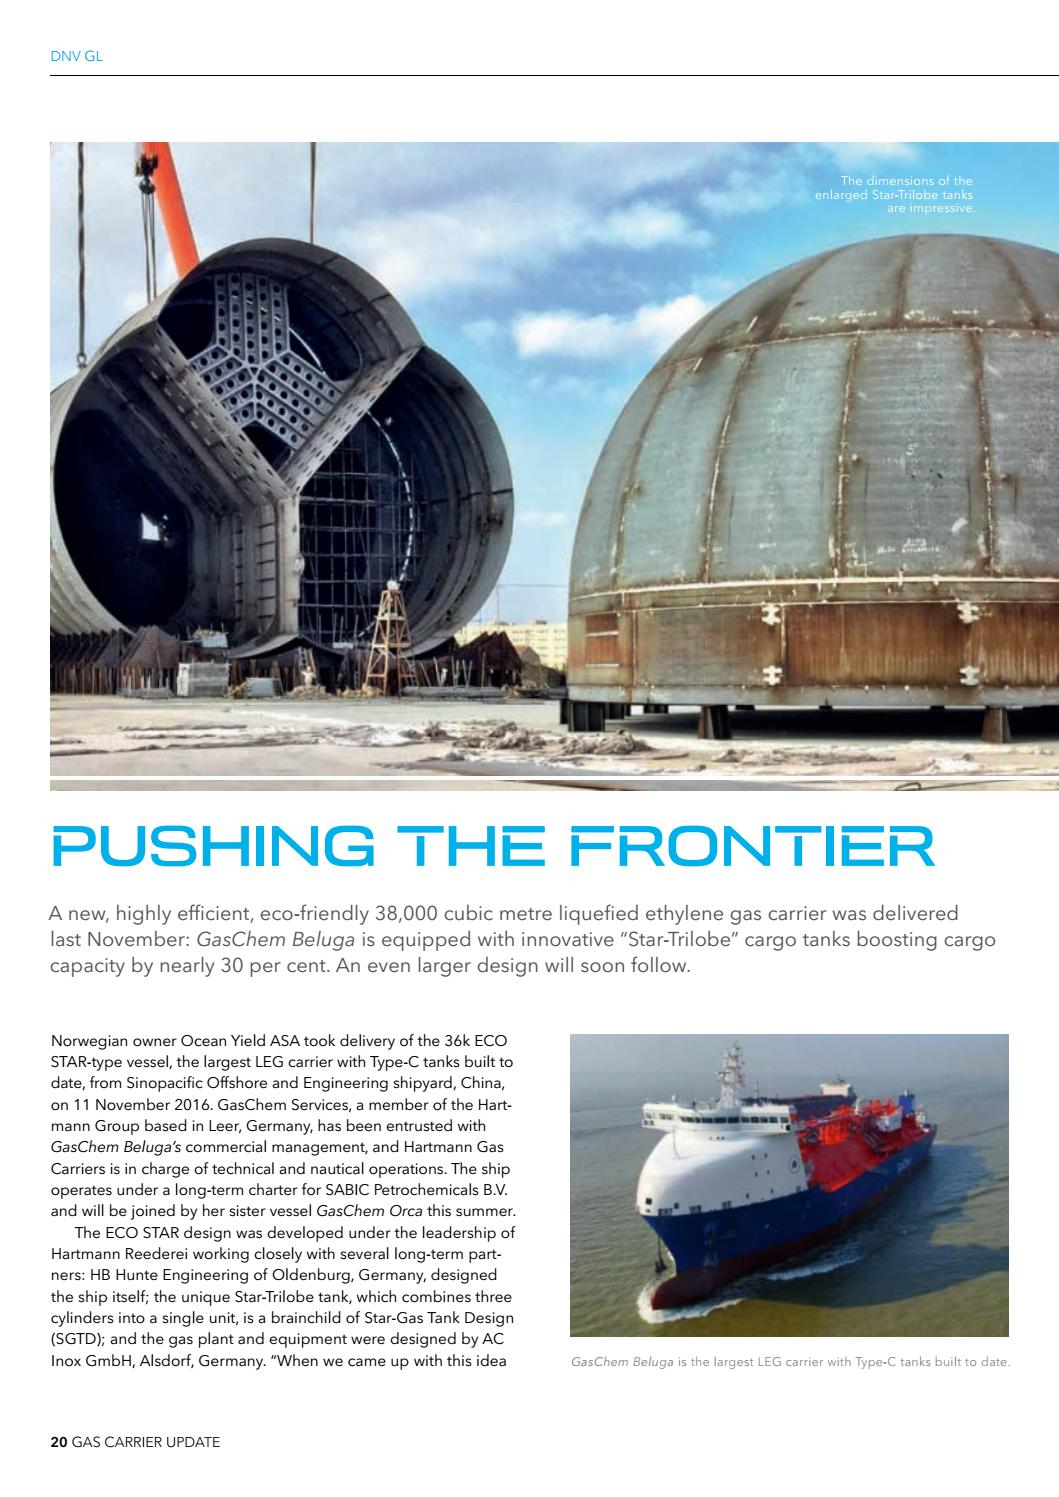 Largest Cargo Ship >> DNV GL Gas Carrier Update issue 2017 by DNV GL - Issuu